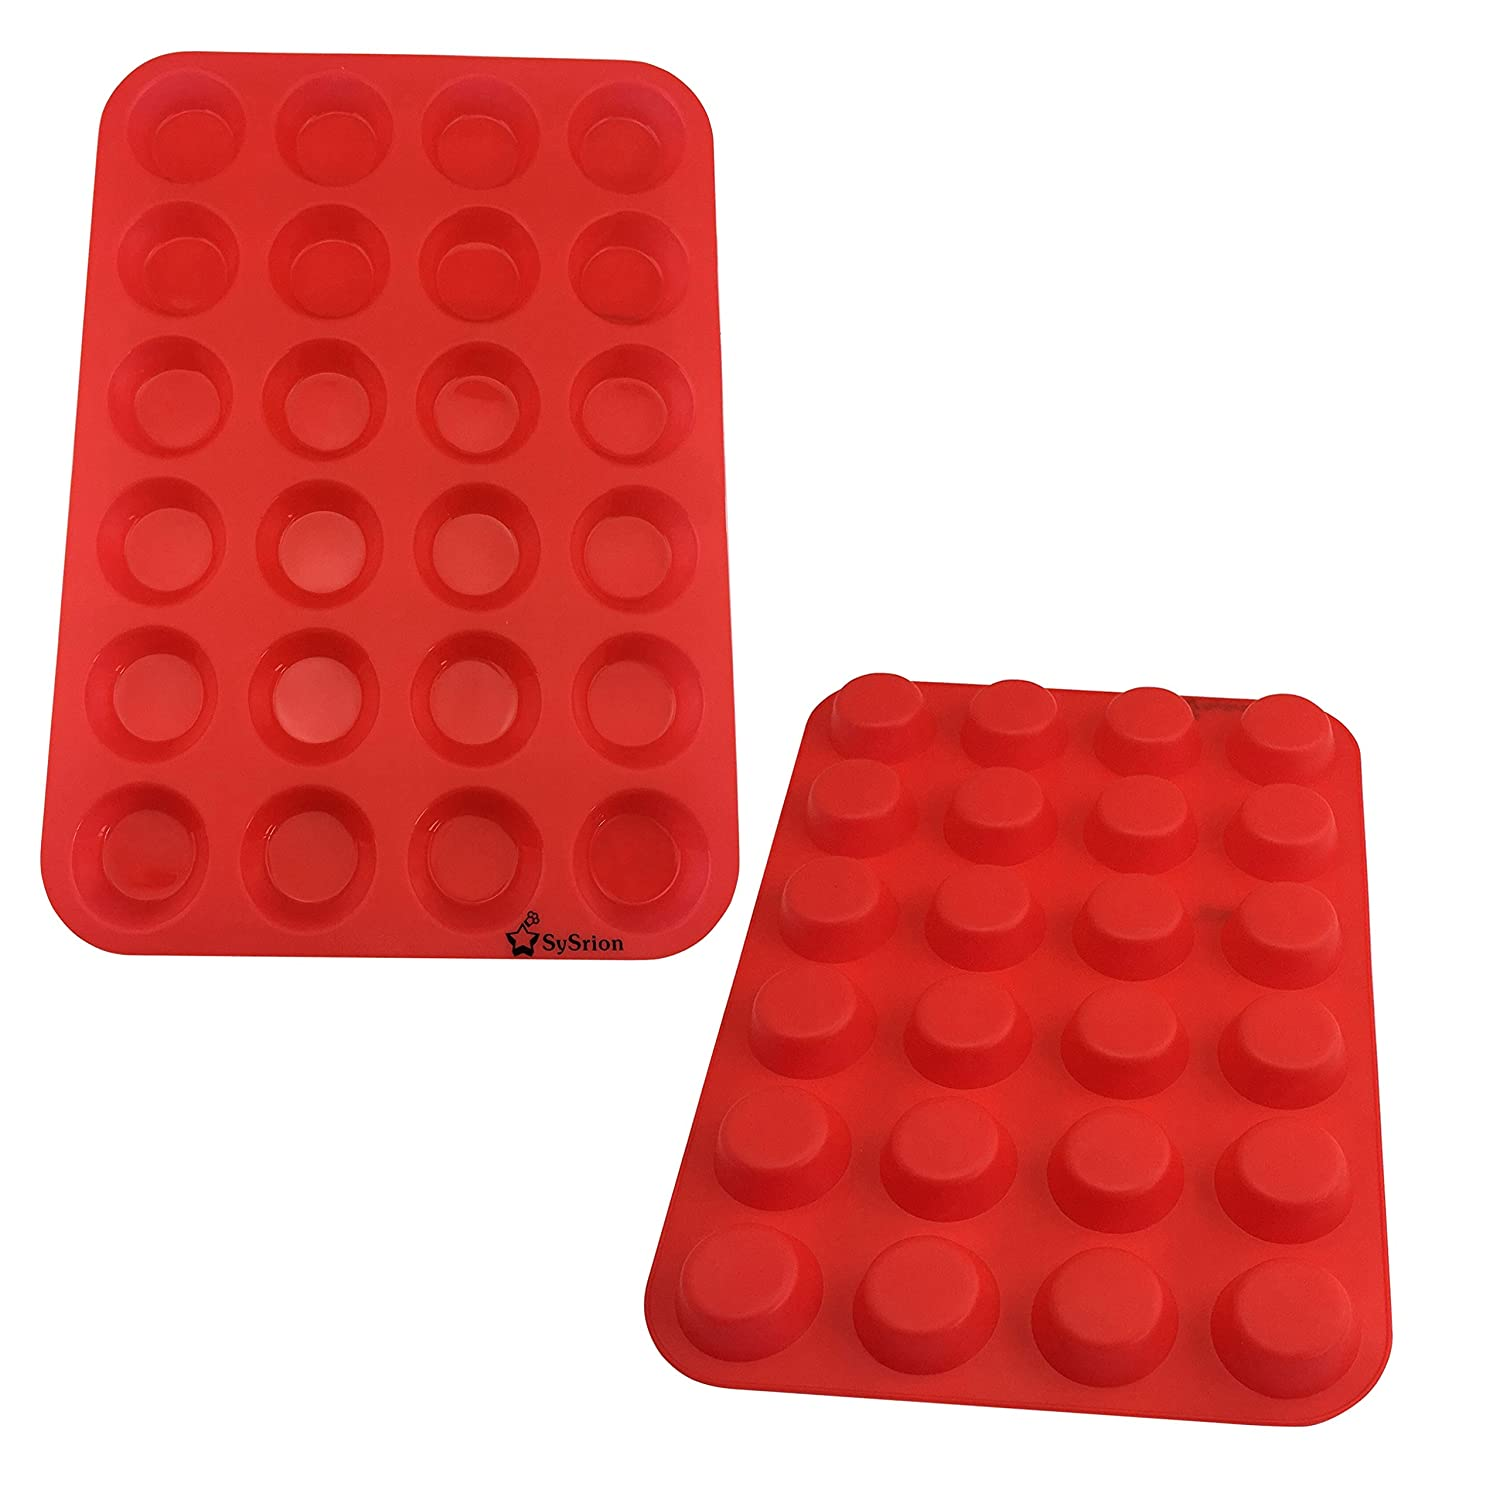 red silicone molds for fat bombs